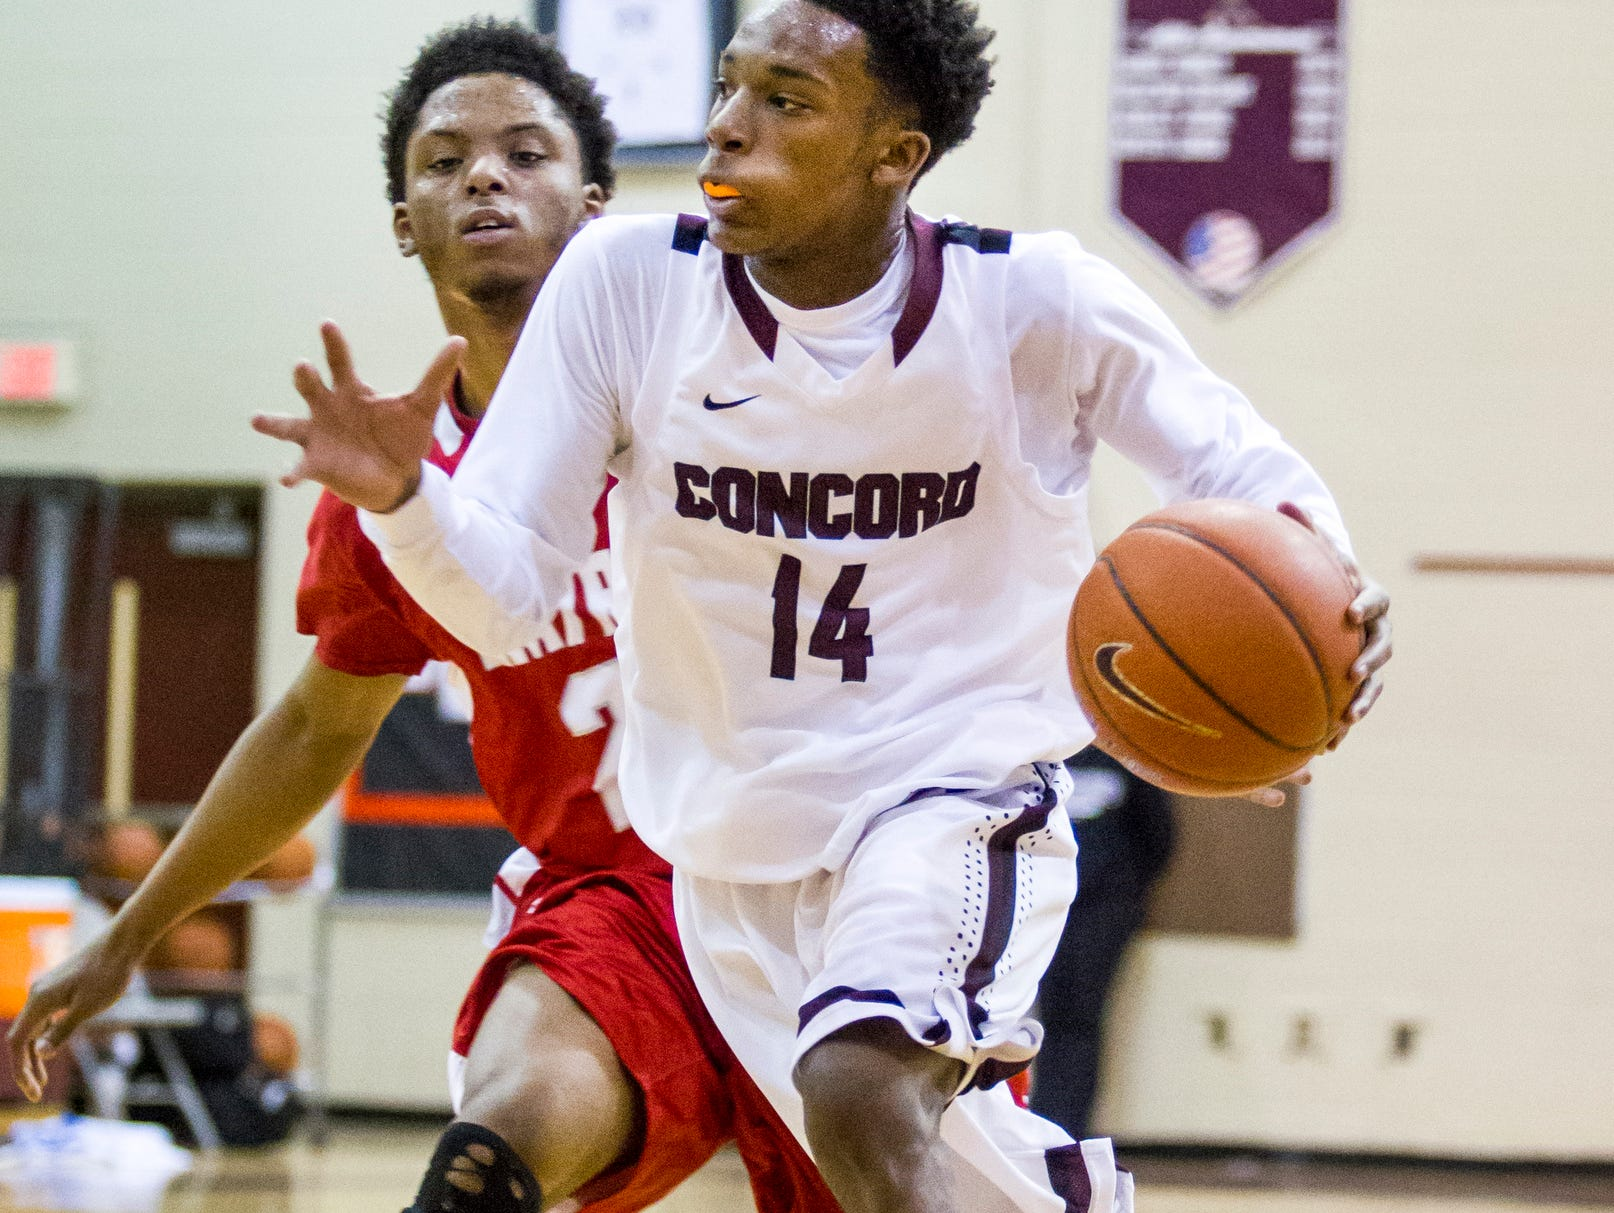 Concord's Craig Brady drives past Smyrna's Ja'vier Worthy at Concord High School on Tuesday evening. Concord defeated Smyrna 50-44.